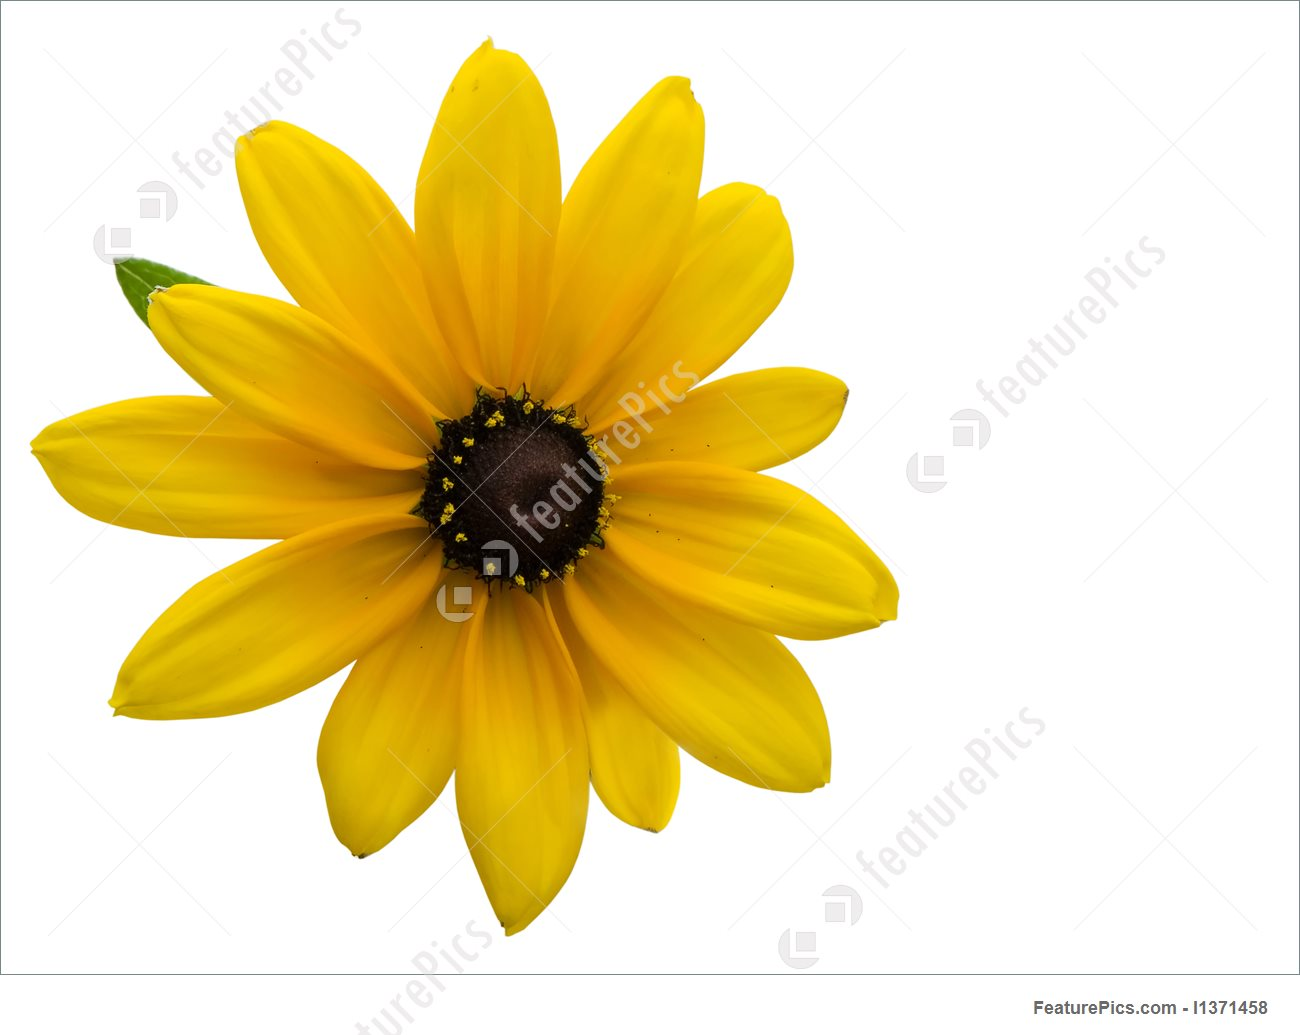 Black-eyed Susan clipart #2, Download drawings